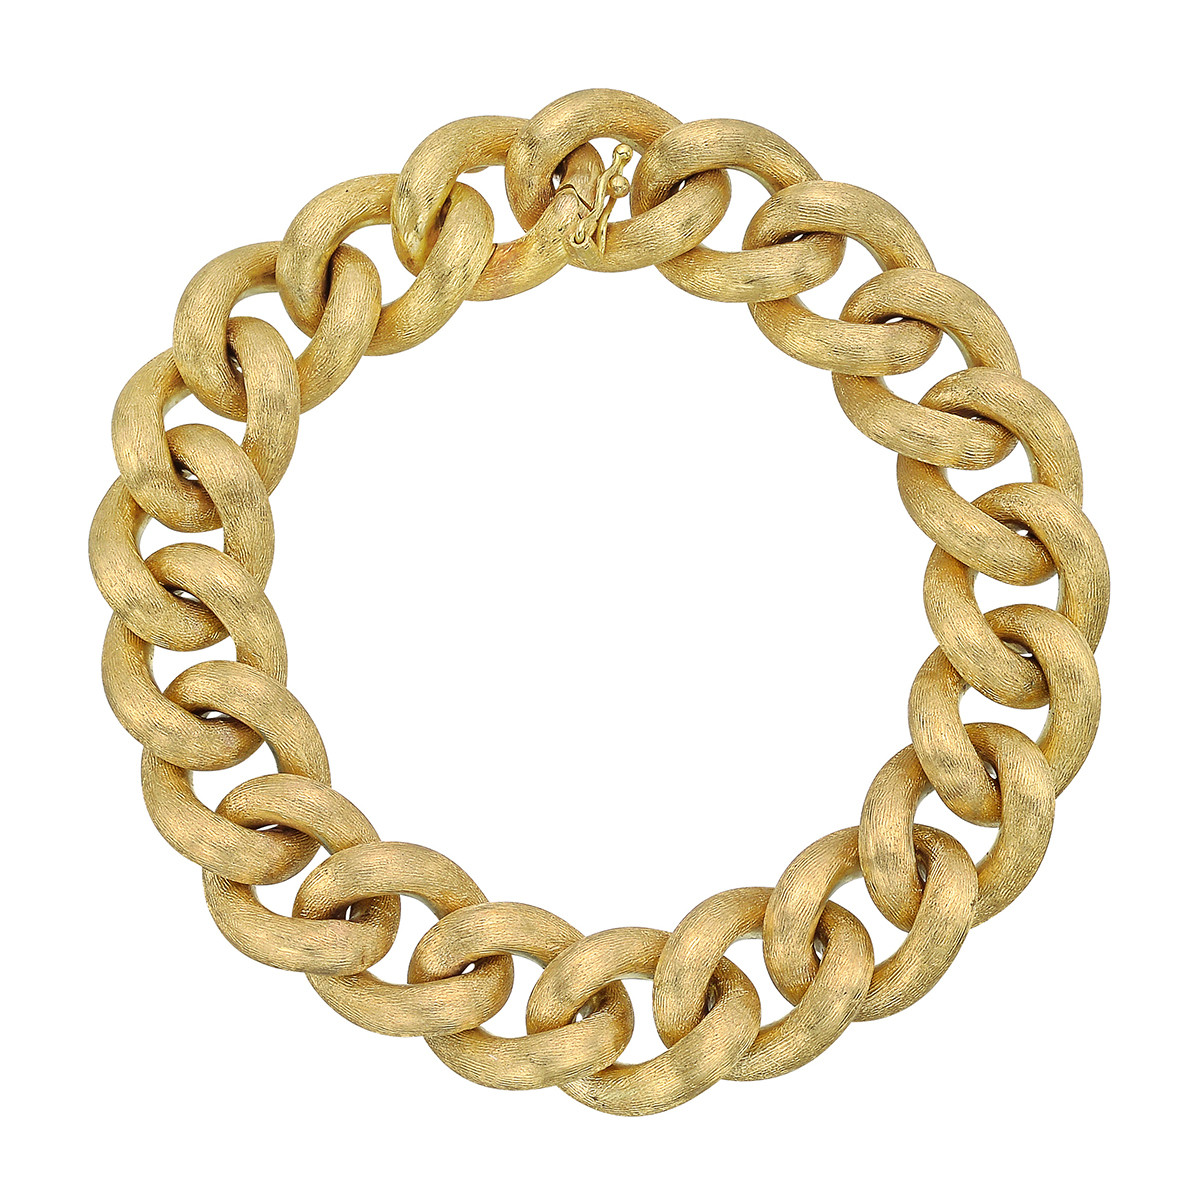 Satin 18k Yellow Gold Curb-Link Bracelet